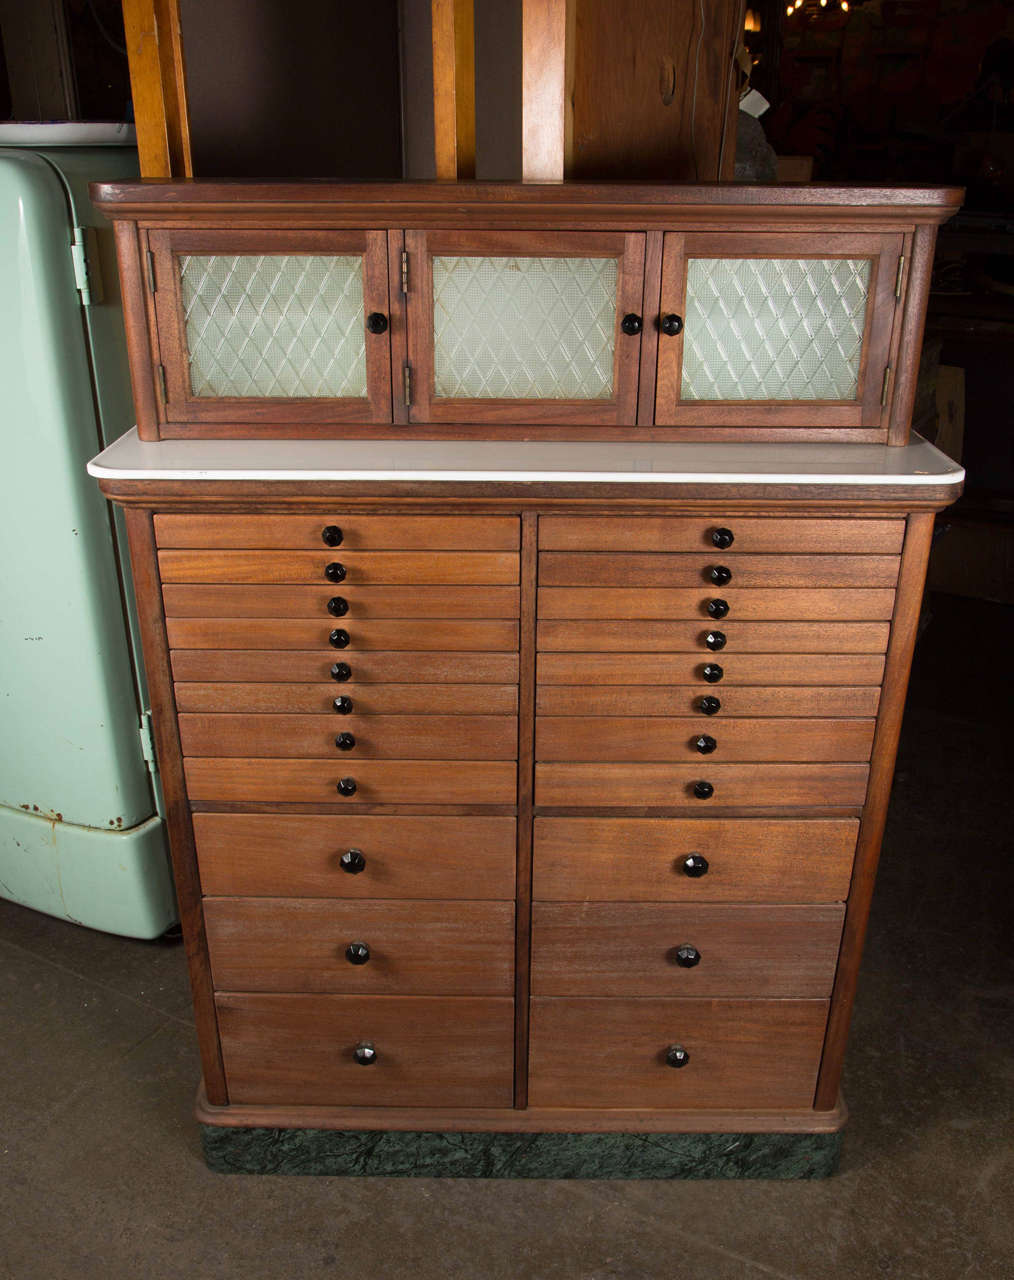 1920s Wooden Dental Cabinet with Textured Glass and Black Pulls ...